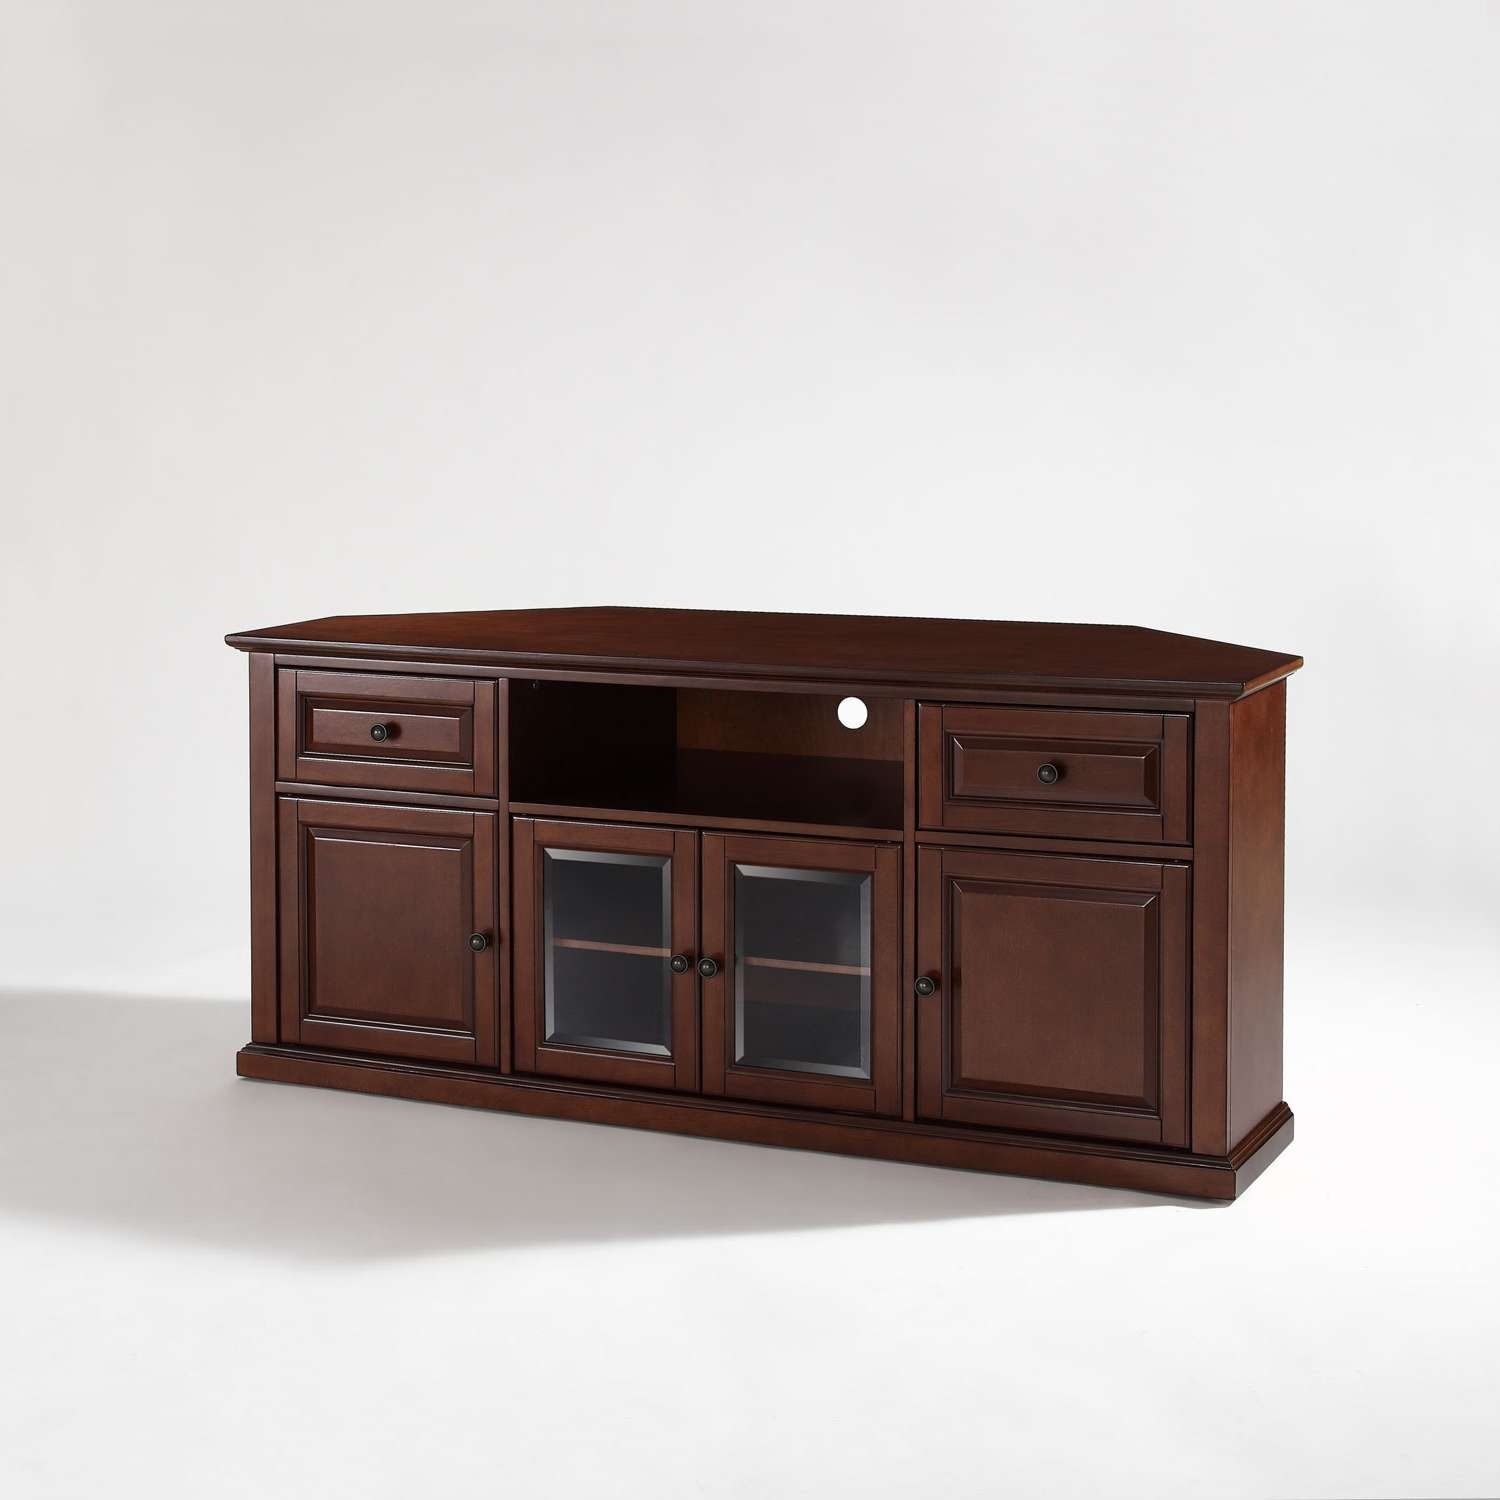 60 Inch Corner Tv Stand In Vintage Mahogany Crosley Furniture Throughout Tv Stands For Corners (View 1 of 15)